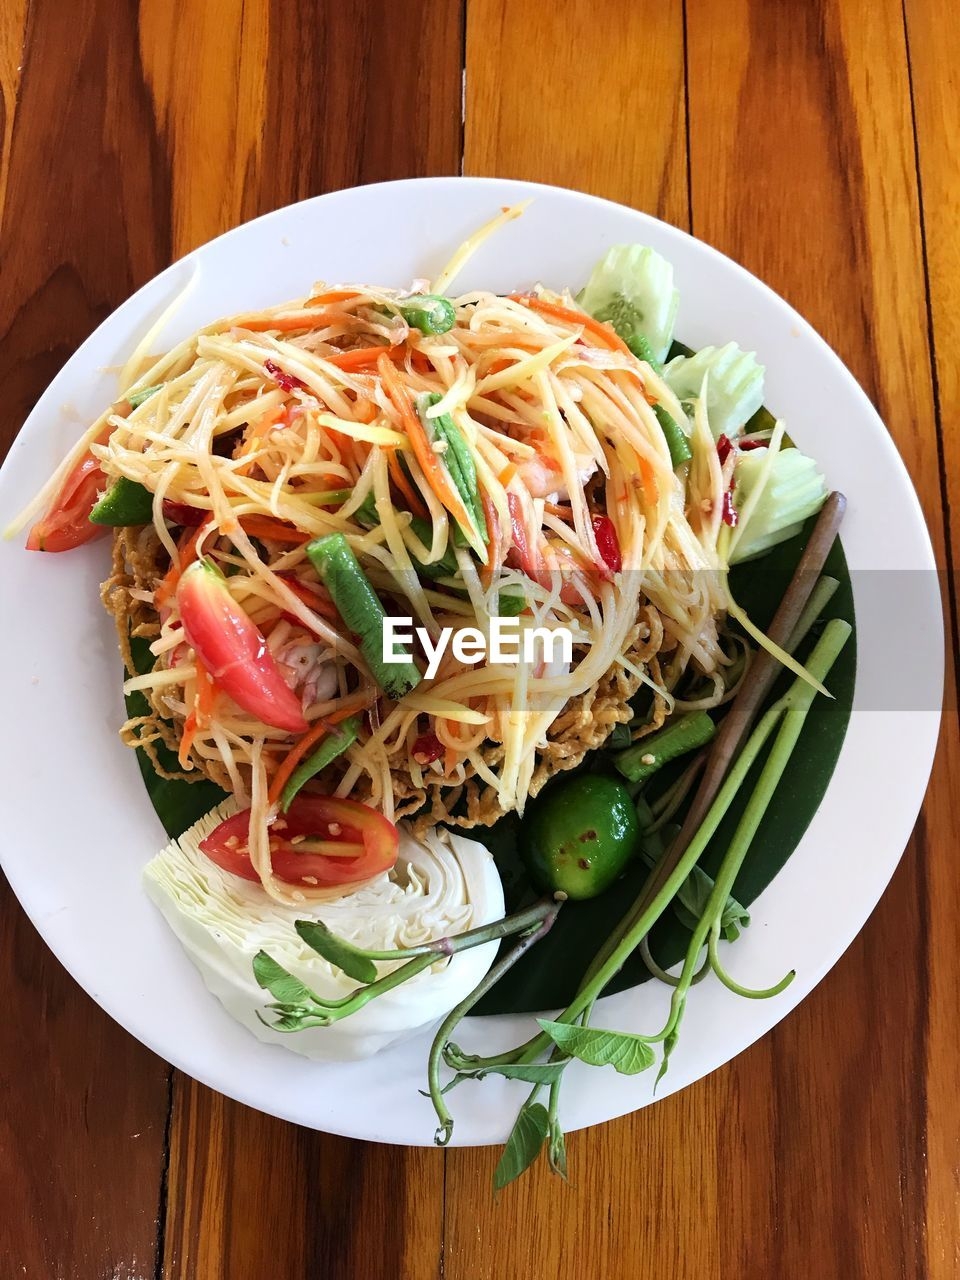 food and drink, food, freshness, table, healthy eating, ready-to-eat, wellbeing, pasta, serving size, vegetable, italian food, indoors, still life, plate, high angle view, wood - material, no people, meal, close-up, directly above, spaghetti, crockery, vegetarian food